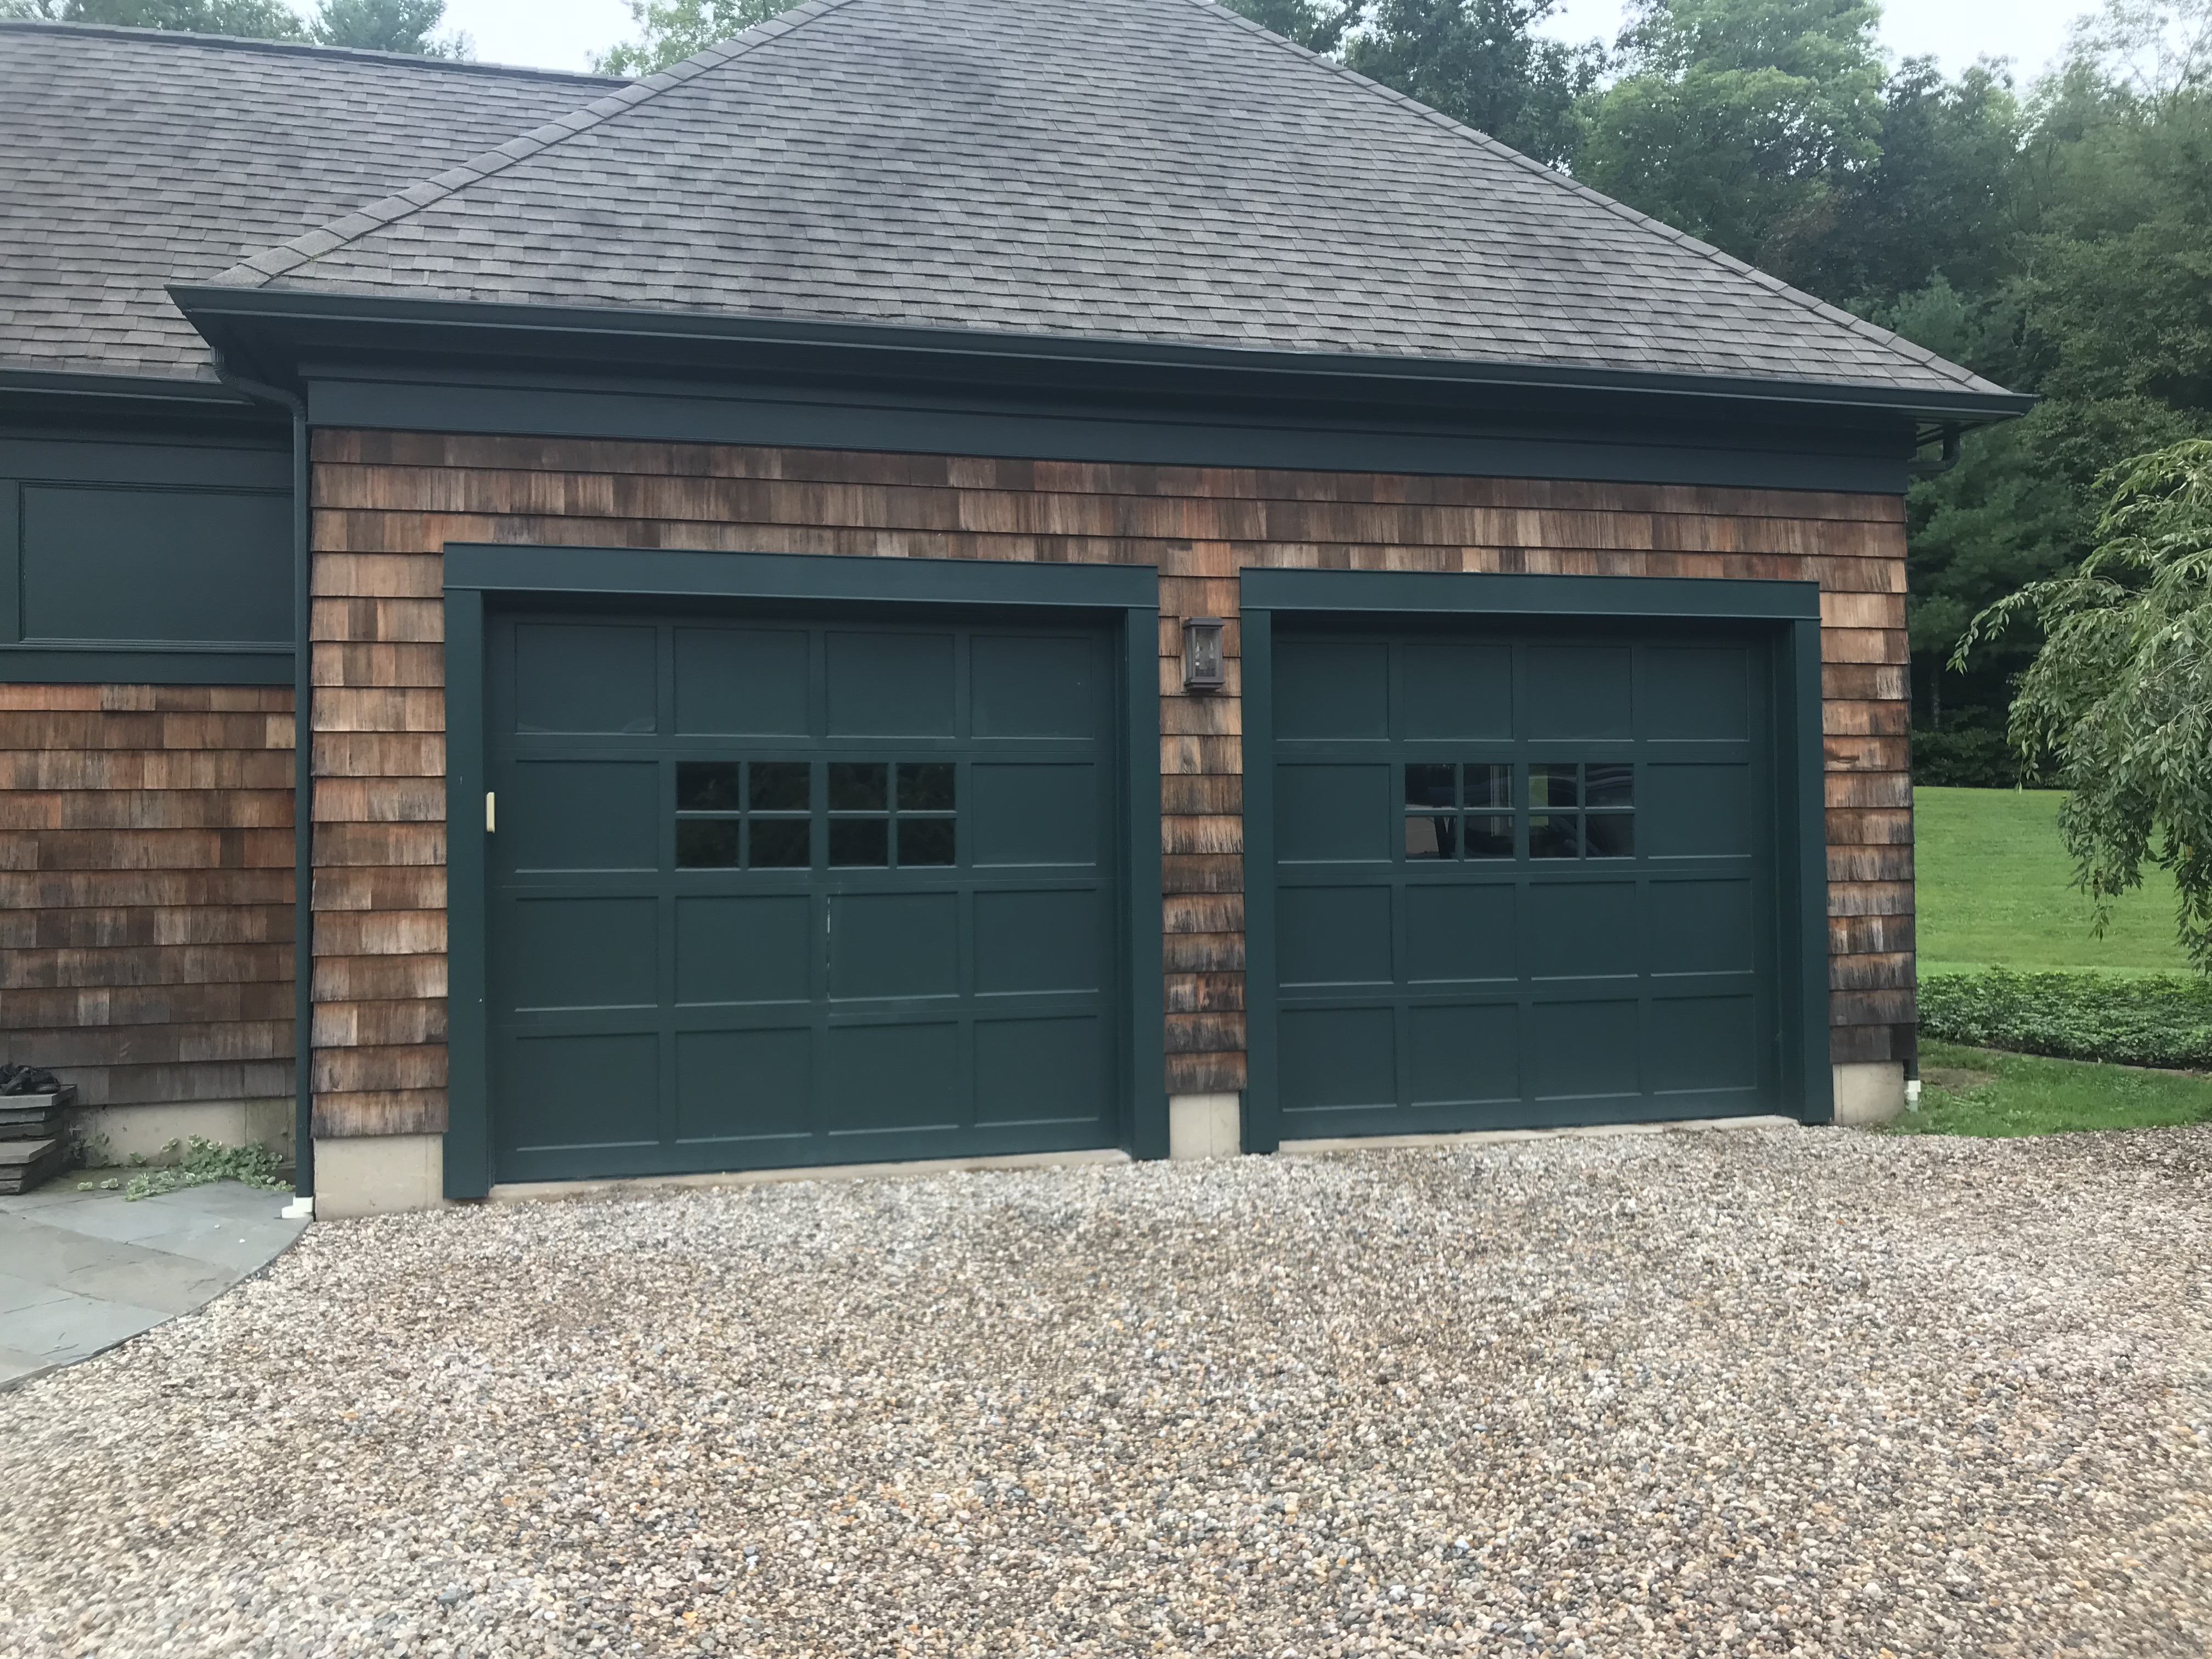 Garage door are the largest moving objects of your home